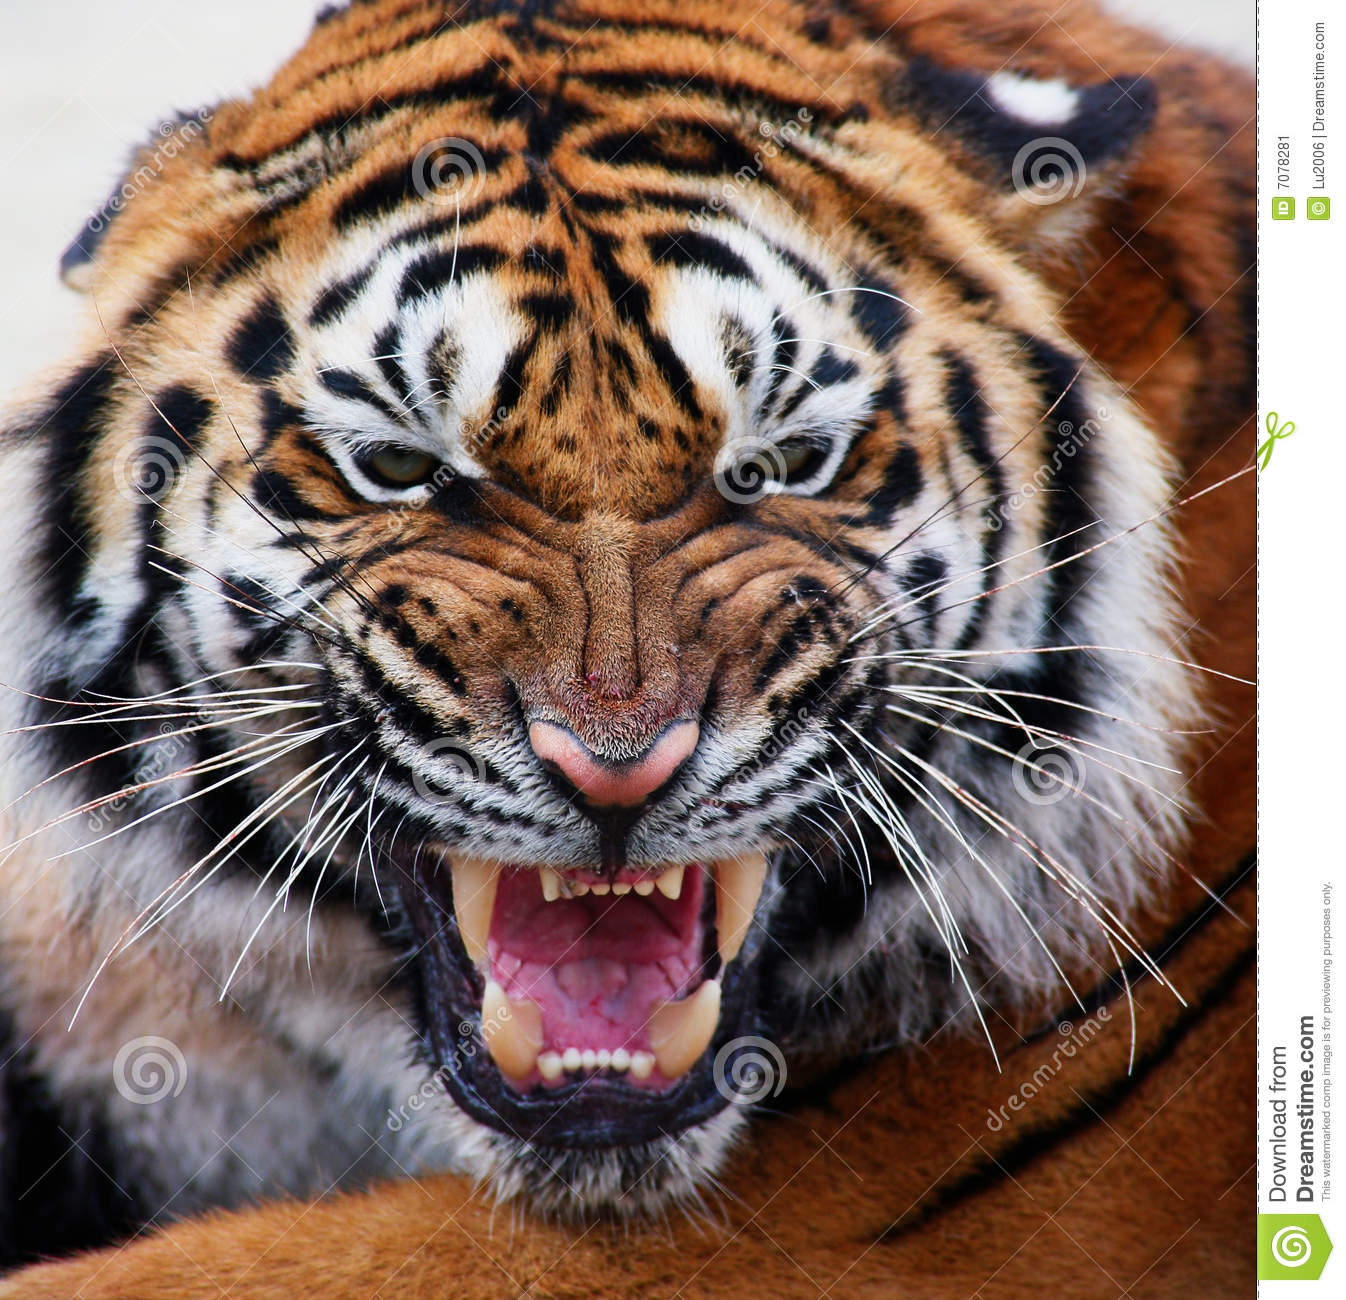 Close up of a tiger s face with bare teeth